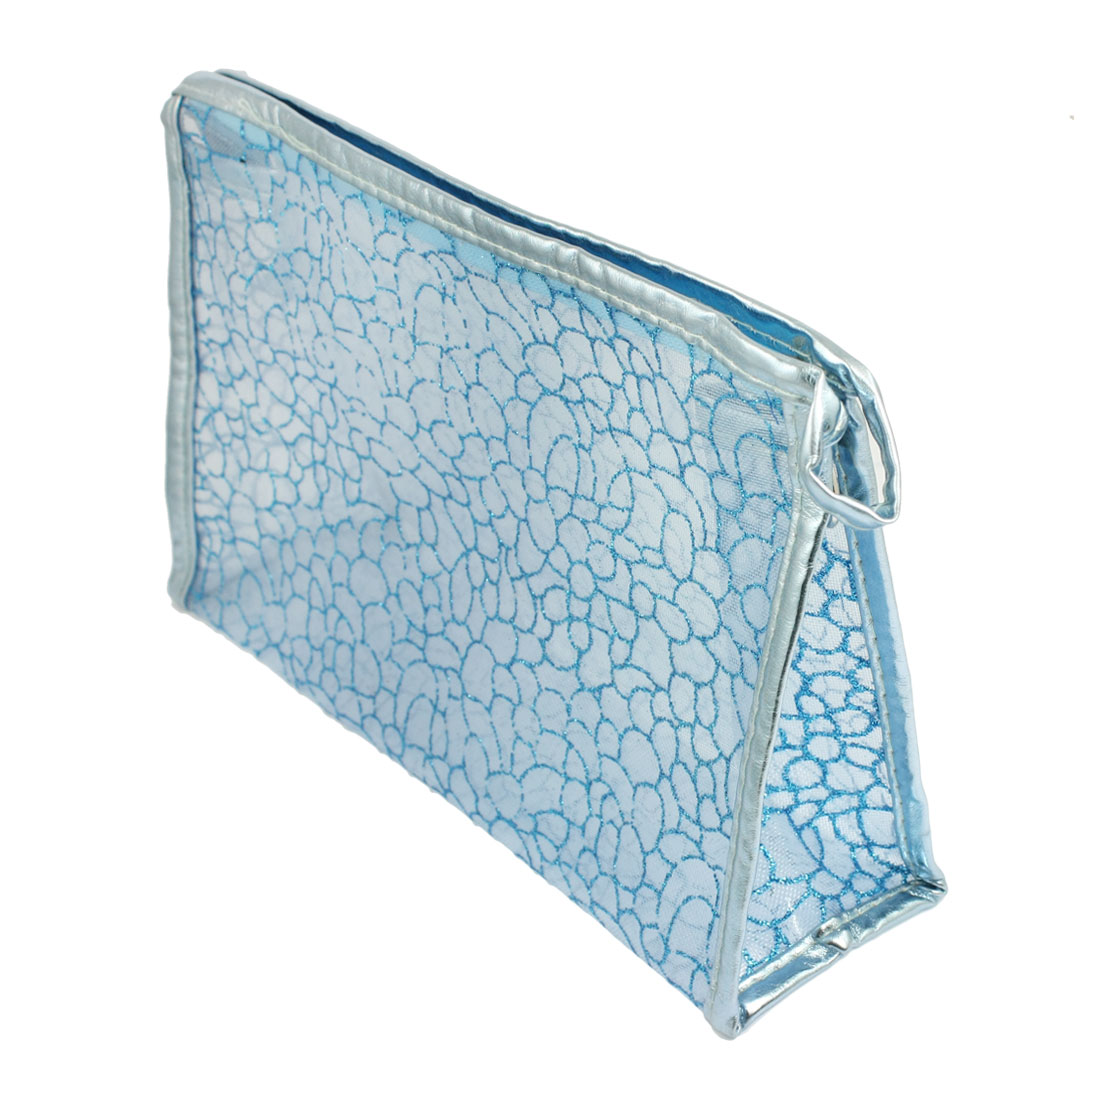 Light Blue Rectangle Shape Glittery Mesh Cosmetic Bag Holder for Lady